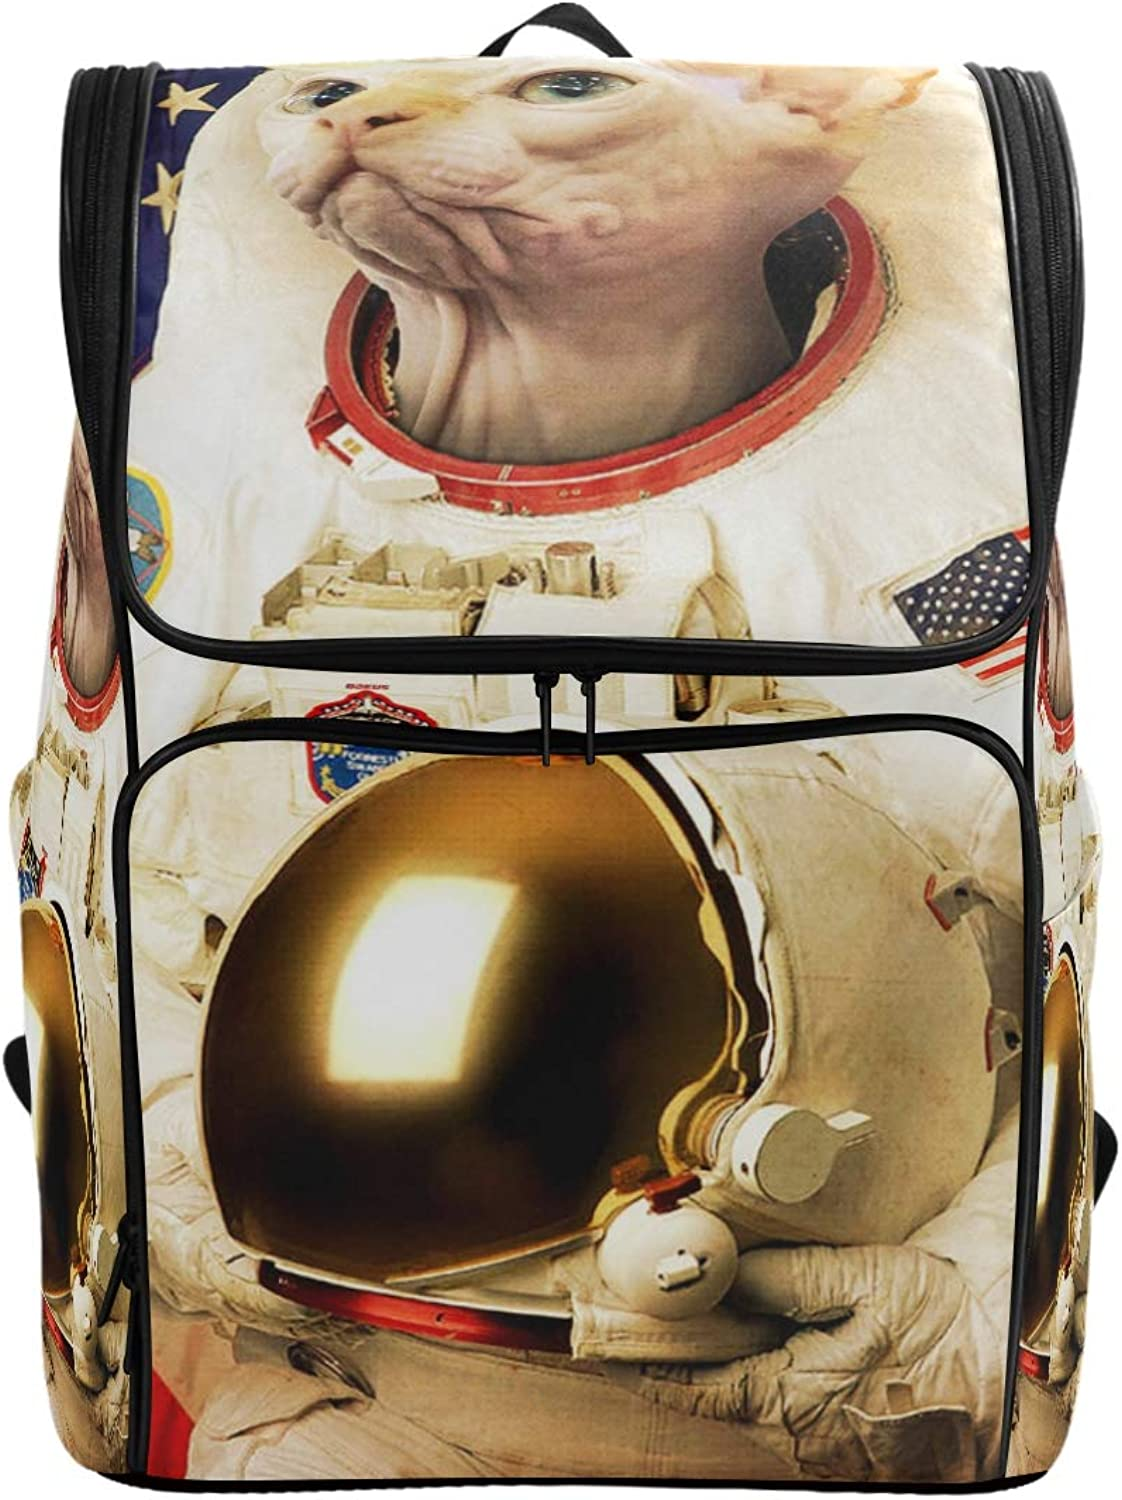 MONTOJ Astronaut Hairless Cat Outdoor Hiking Backpack Hiking & Travelling Backpack with Laptop Compartment & Camping Backpack